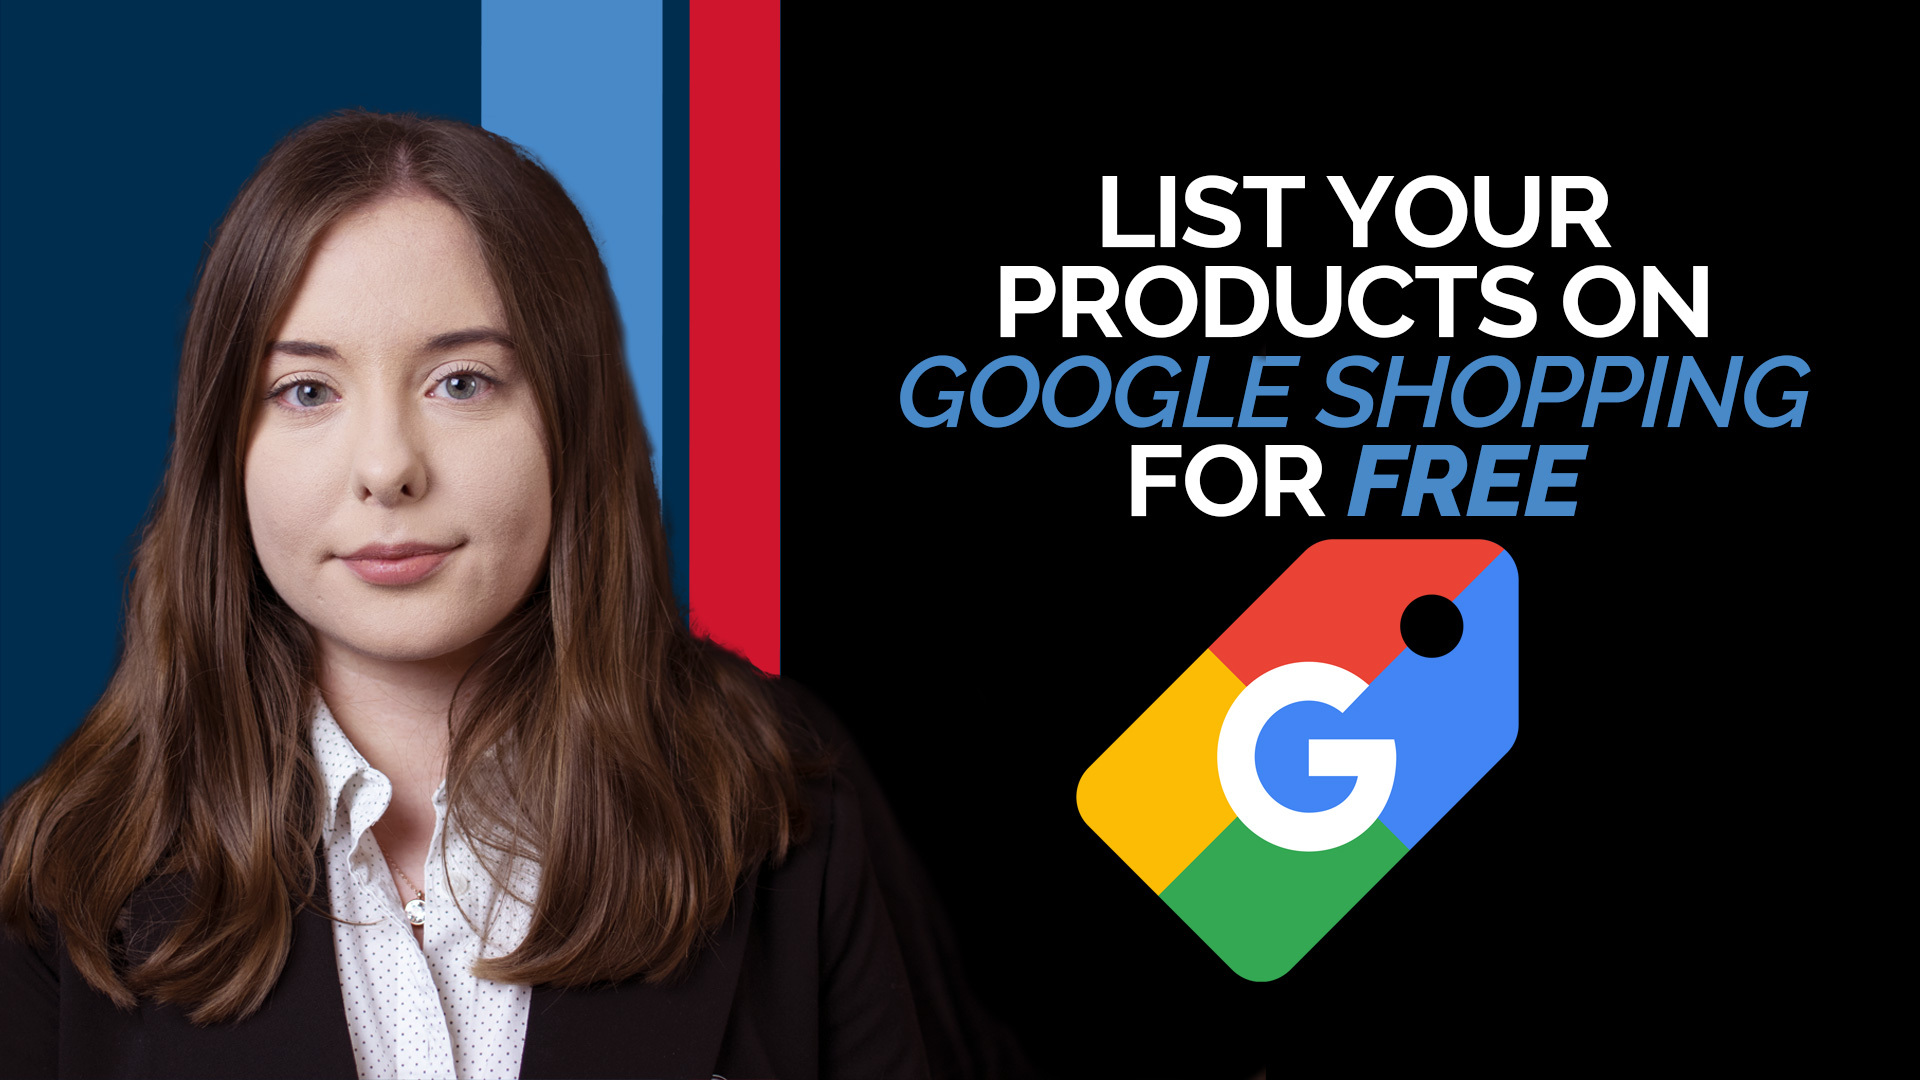 List your Products on Google Shopping for Free